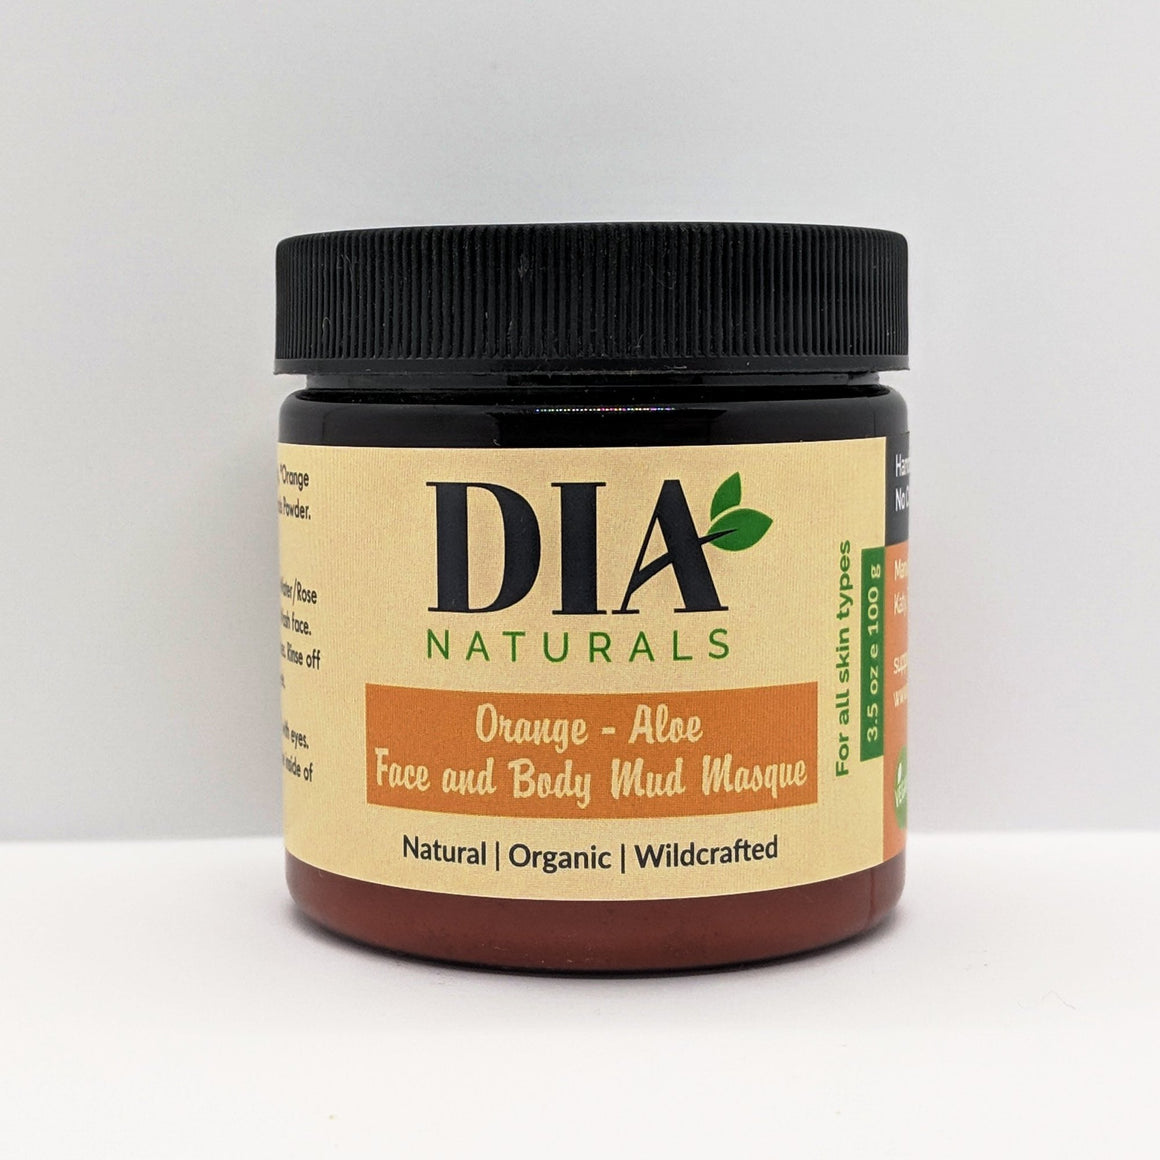 Organic Orange Aloe Face and Body Mud Masque